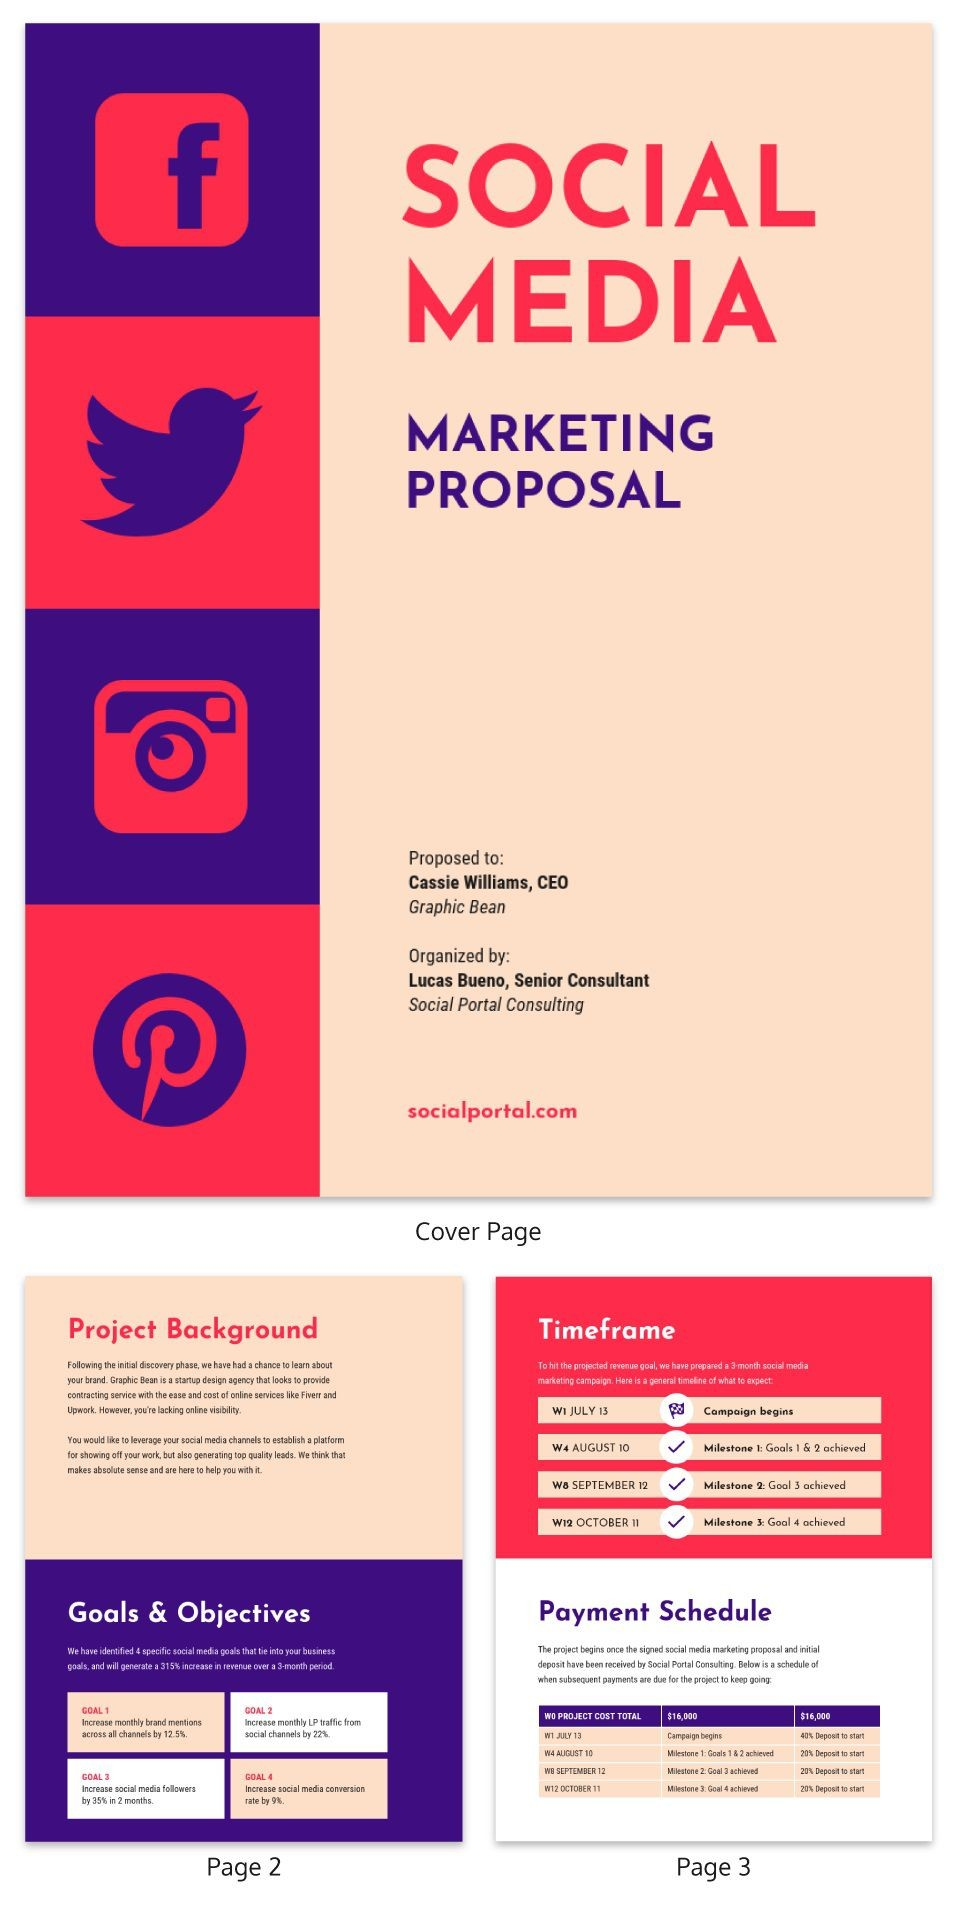 006 Unique Social Media Proposal Template High Resolution  Plan Sample Pdf 2018960